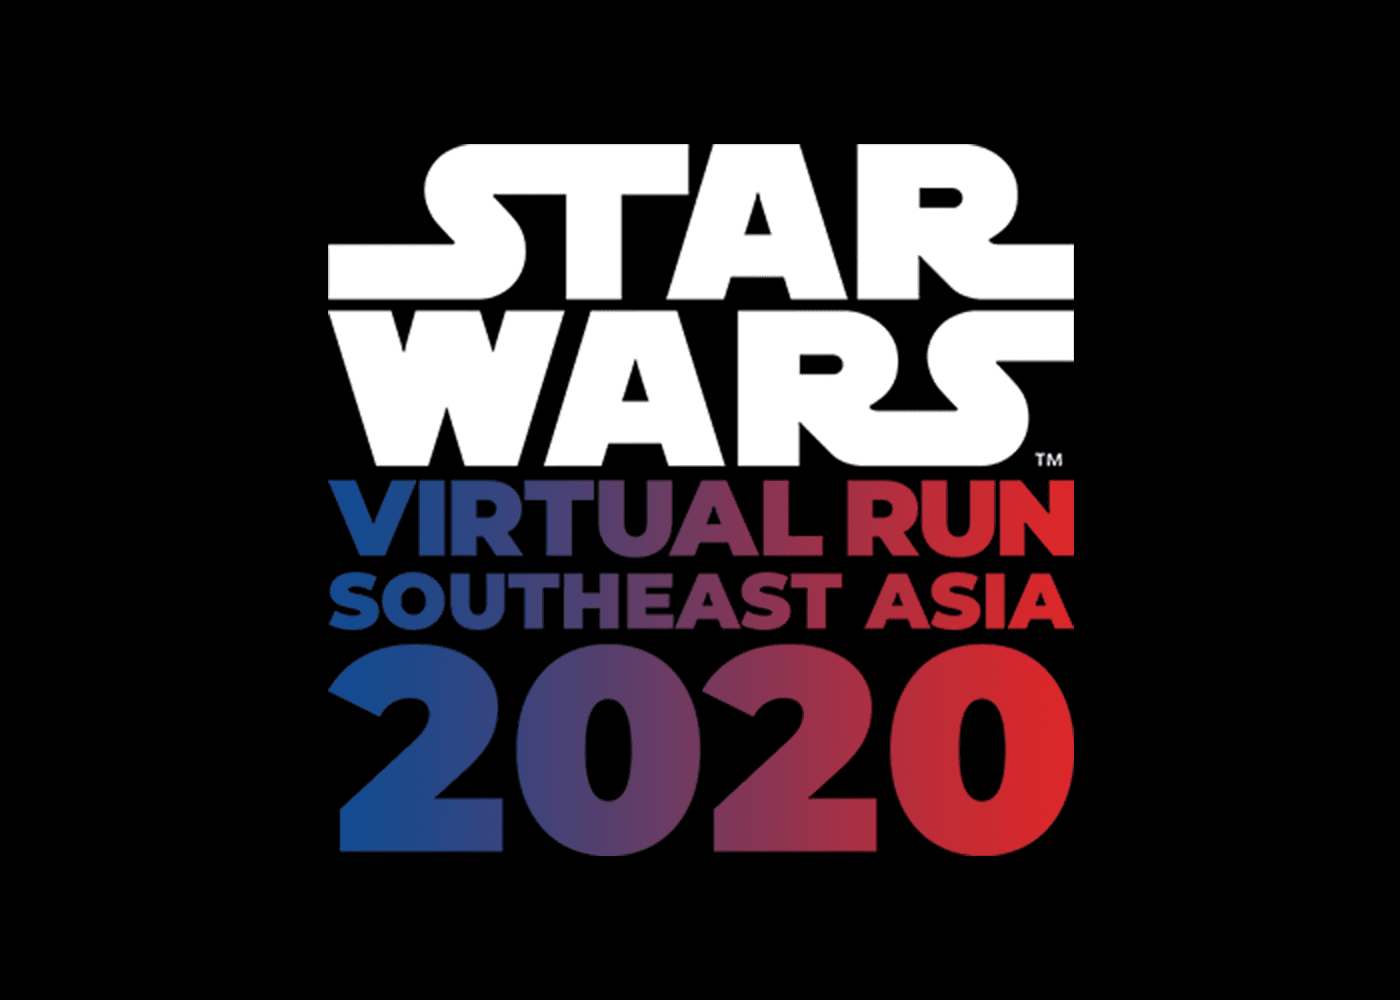 STAR WARS Virtual Run 2020